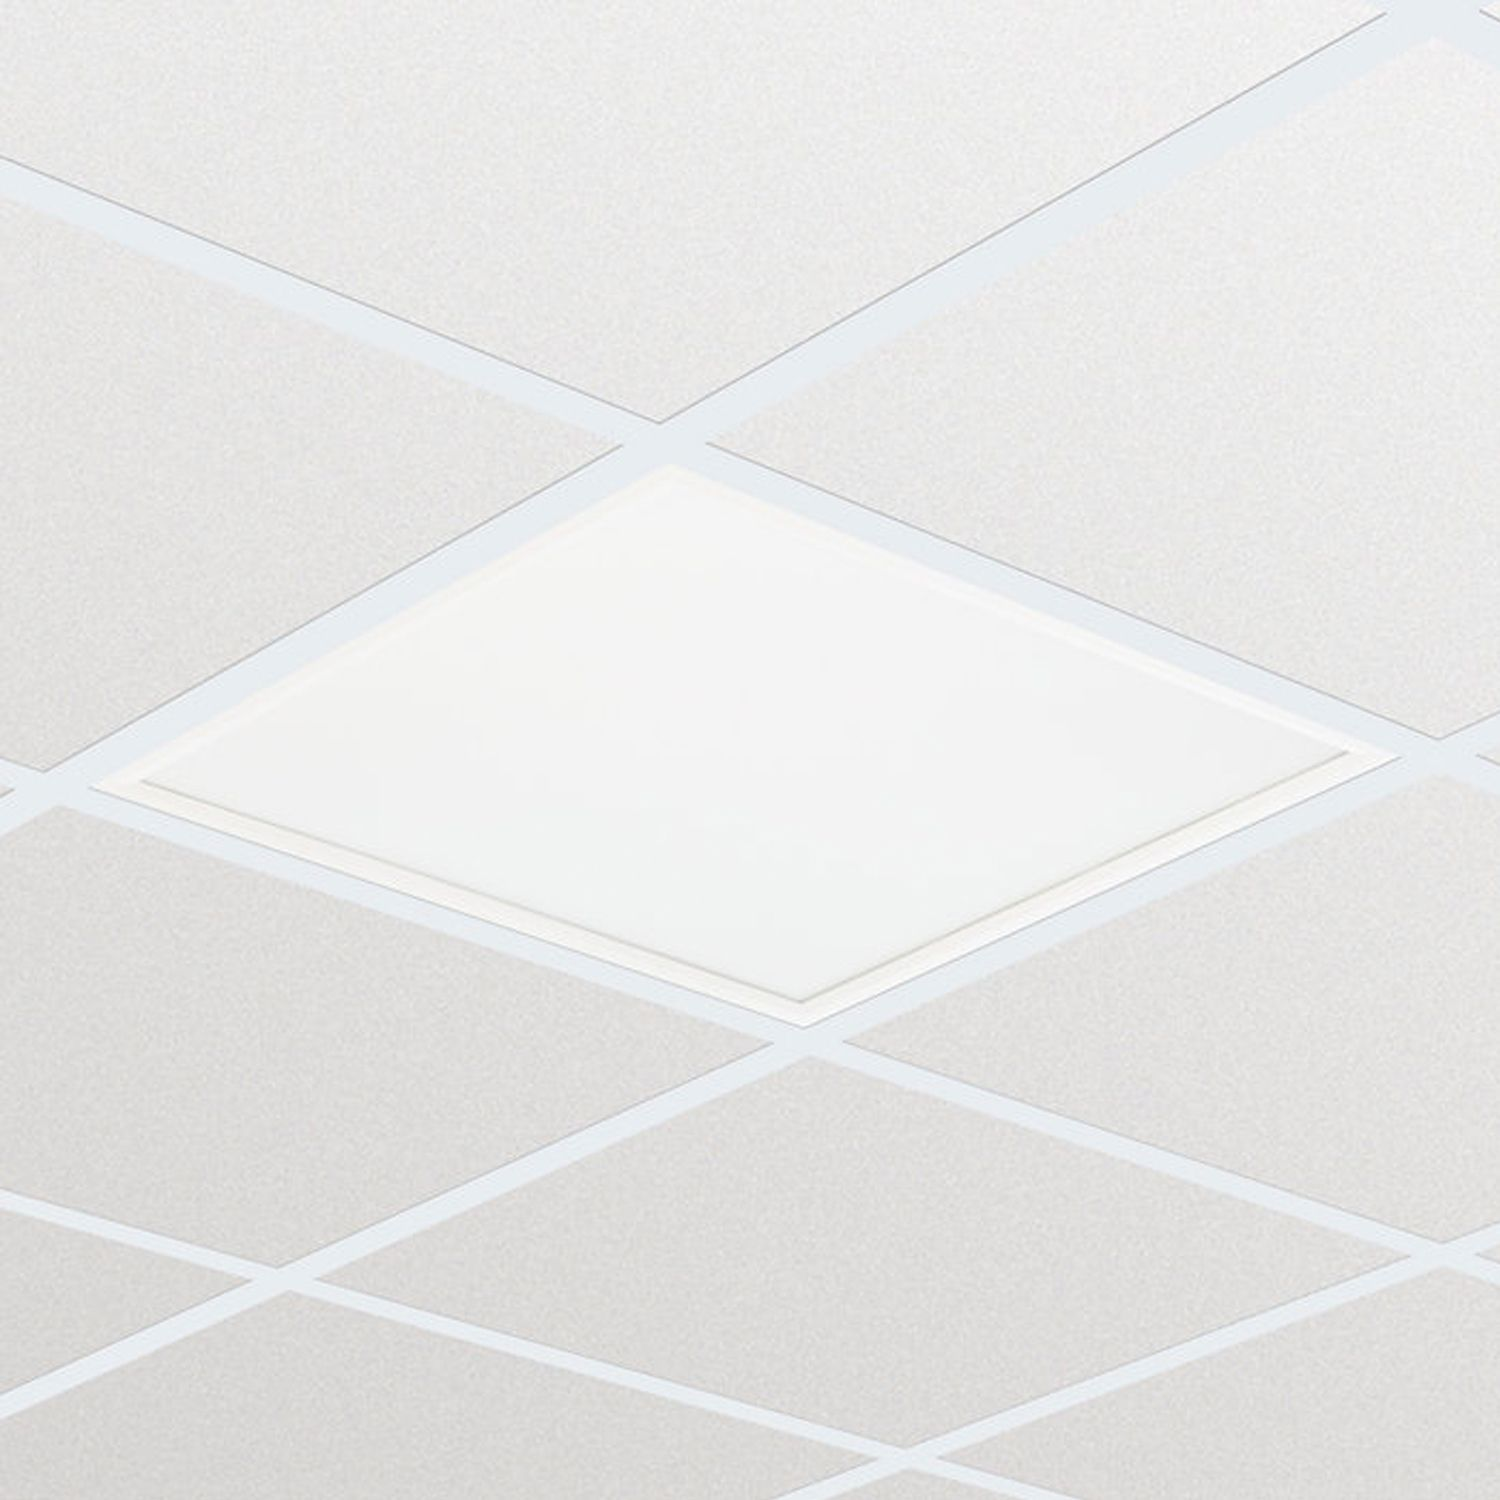 Philips Panel LED CoreLine RC132V G4 60x60cm 4000K 4300lm UGR <25 | Blanco Frio - Reemplazo 4x18W